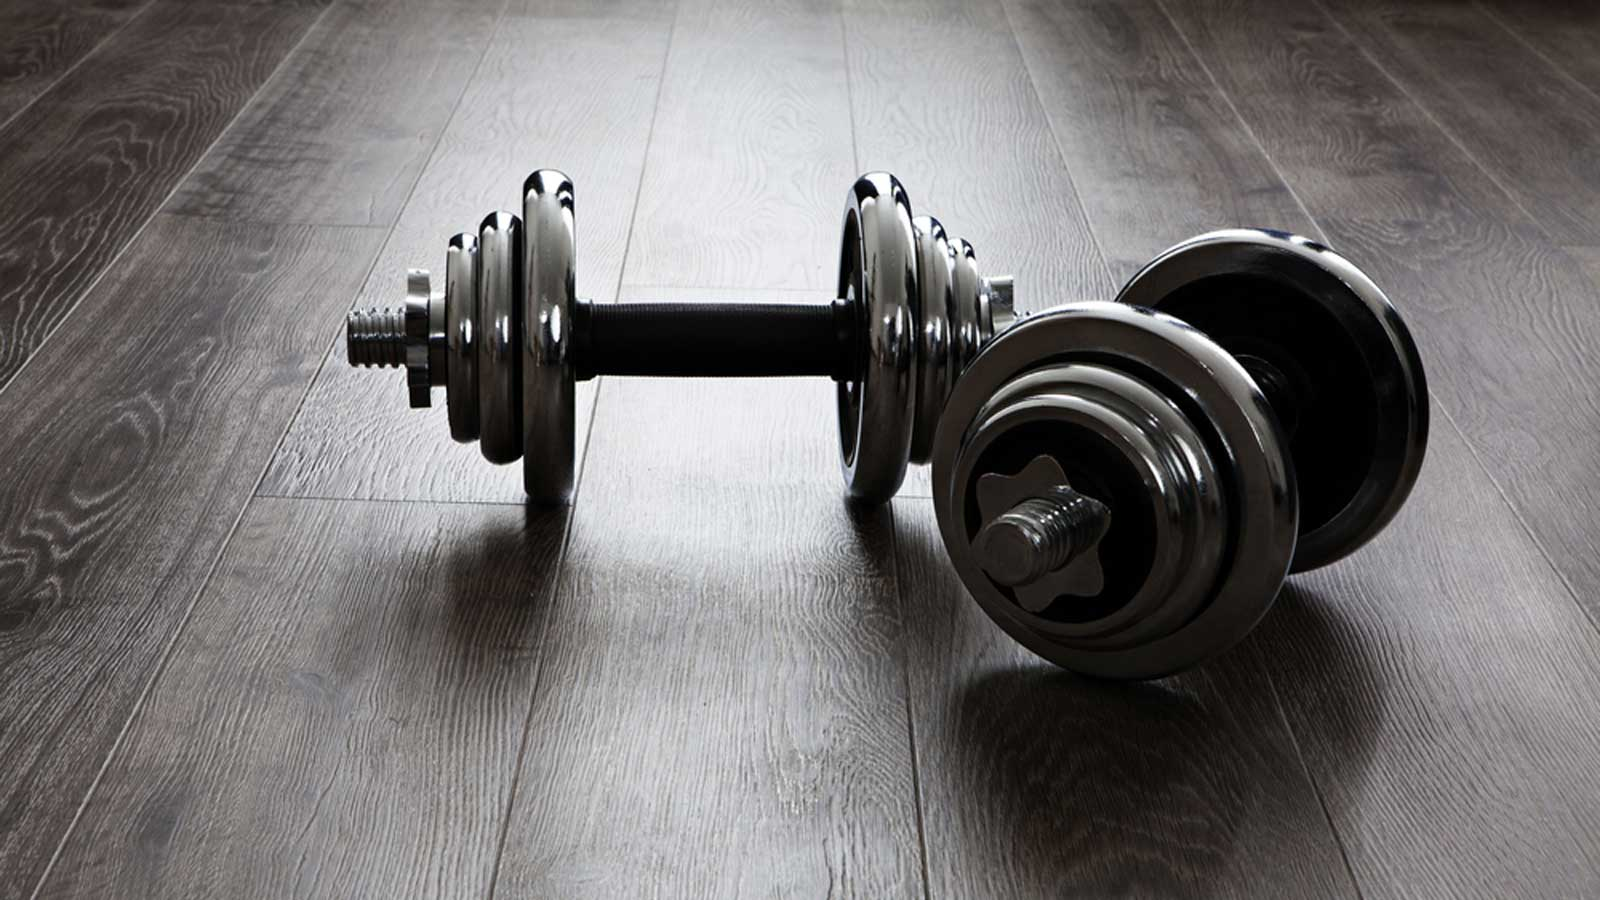 30-Minute Dumbbell Workout Program To Build Muscle